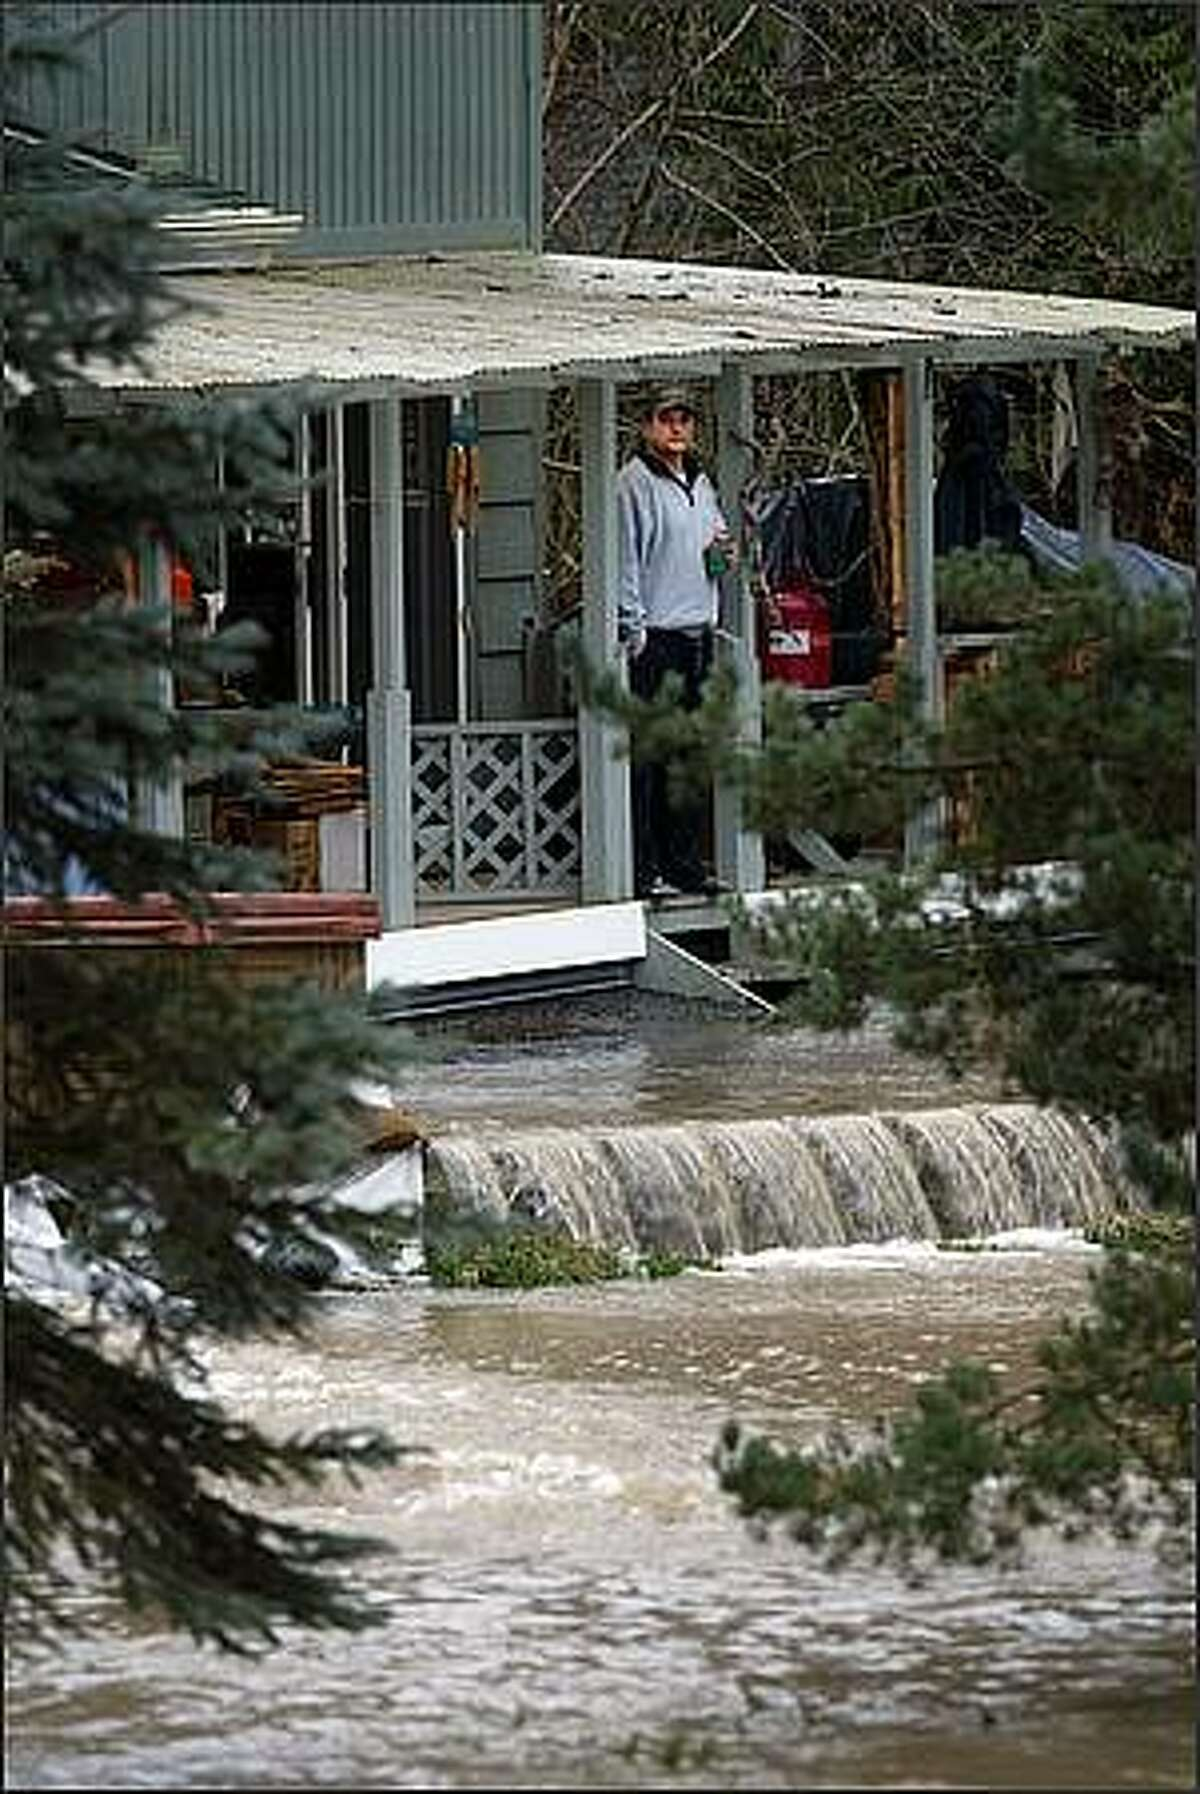 A man who did not want rescue crews to help him stands on porch despite a raging Cedar River which crested and flowed all around him, in Maple Valley, Wash.